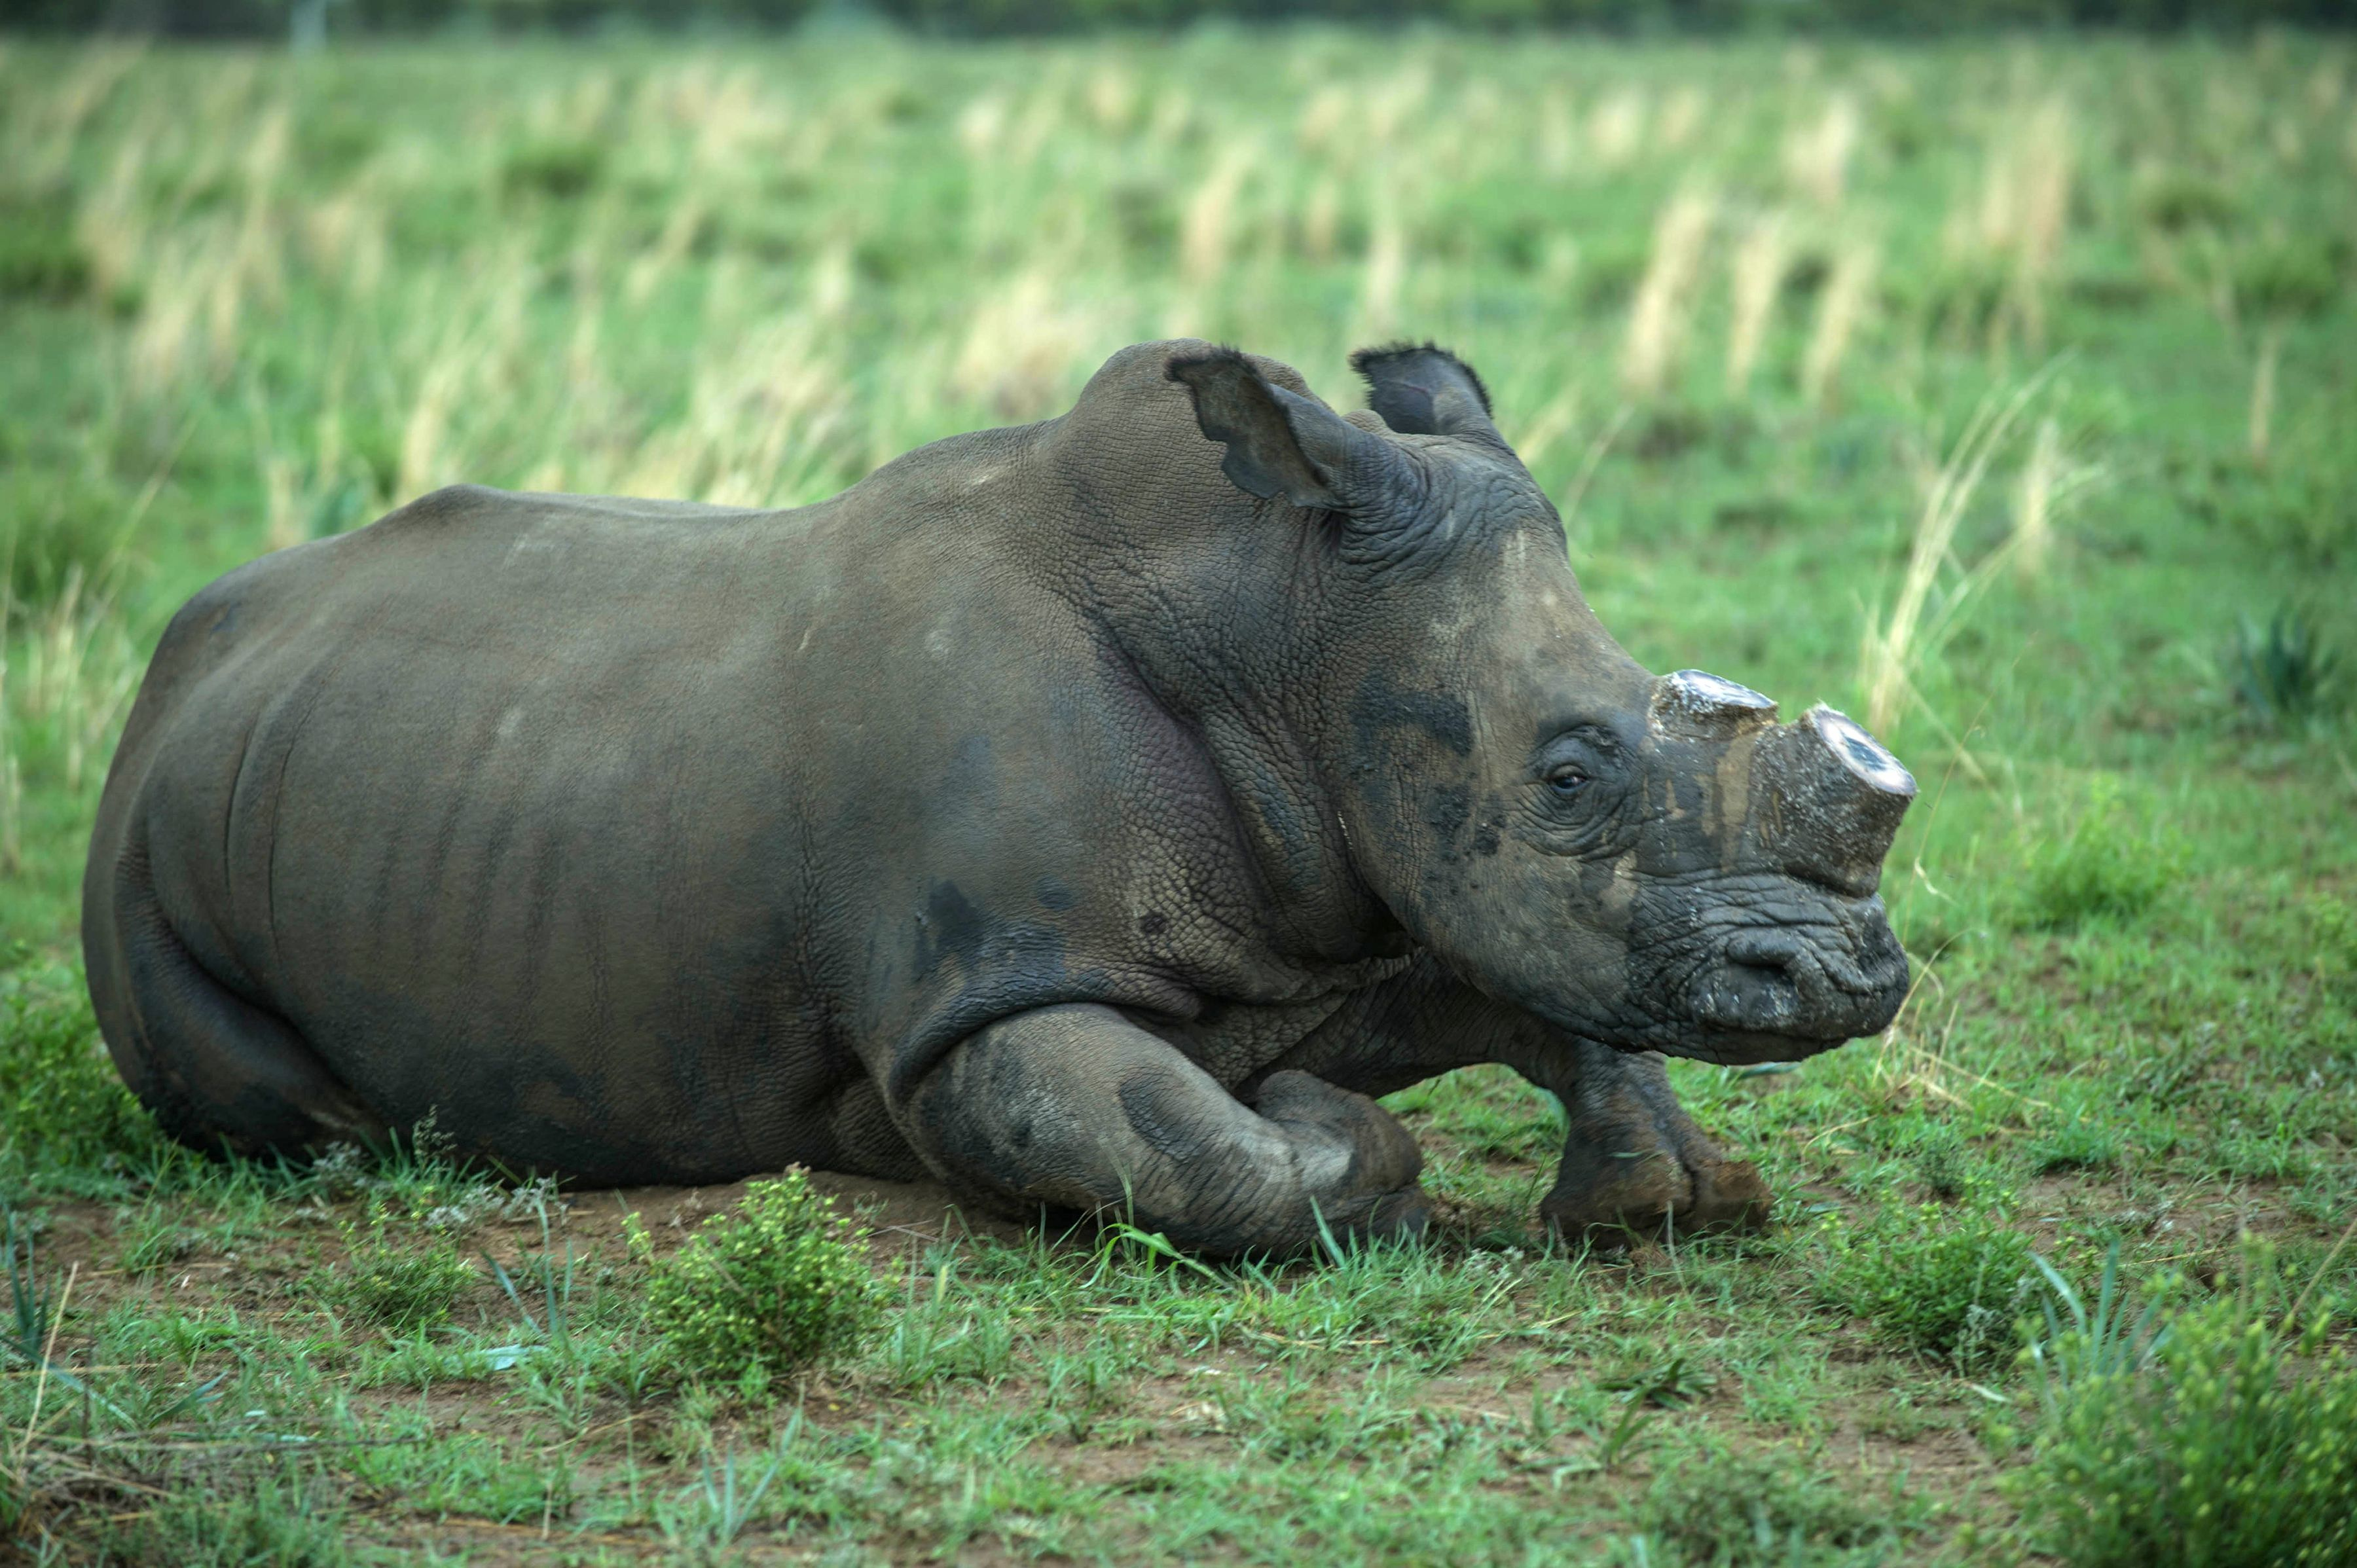 A de-horned rhino slowly wakes up after his horn was trimmed at John Hume's Rhino Ranch in Klerksdorp, in the North Western Province of South Africa, Feb. 3, 2016